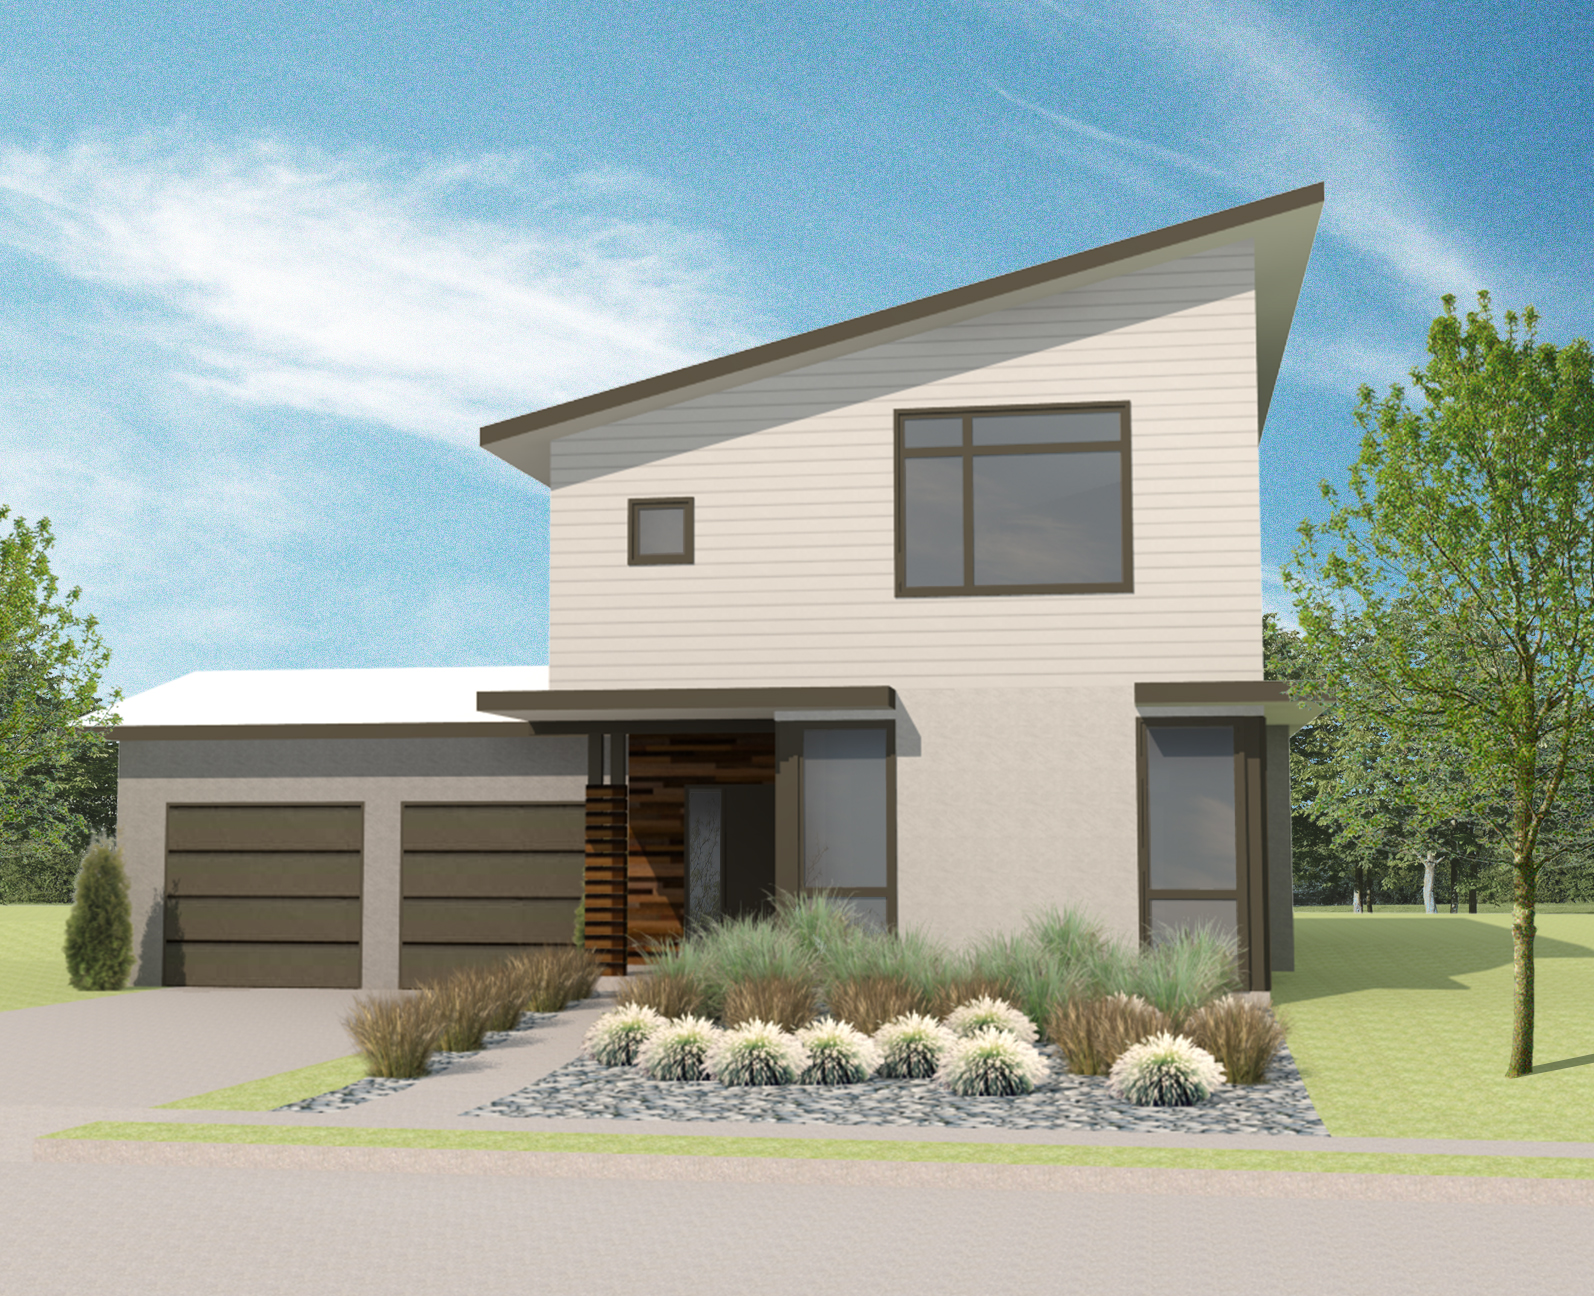 House plan 1 urban north kcmo 39 s new modern subdivision for Urban home plans